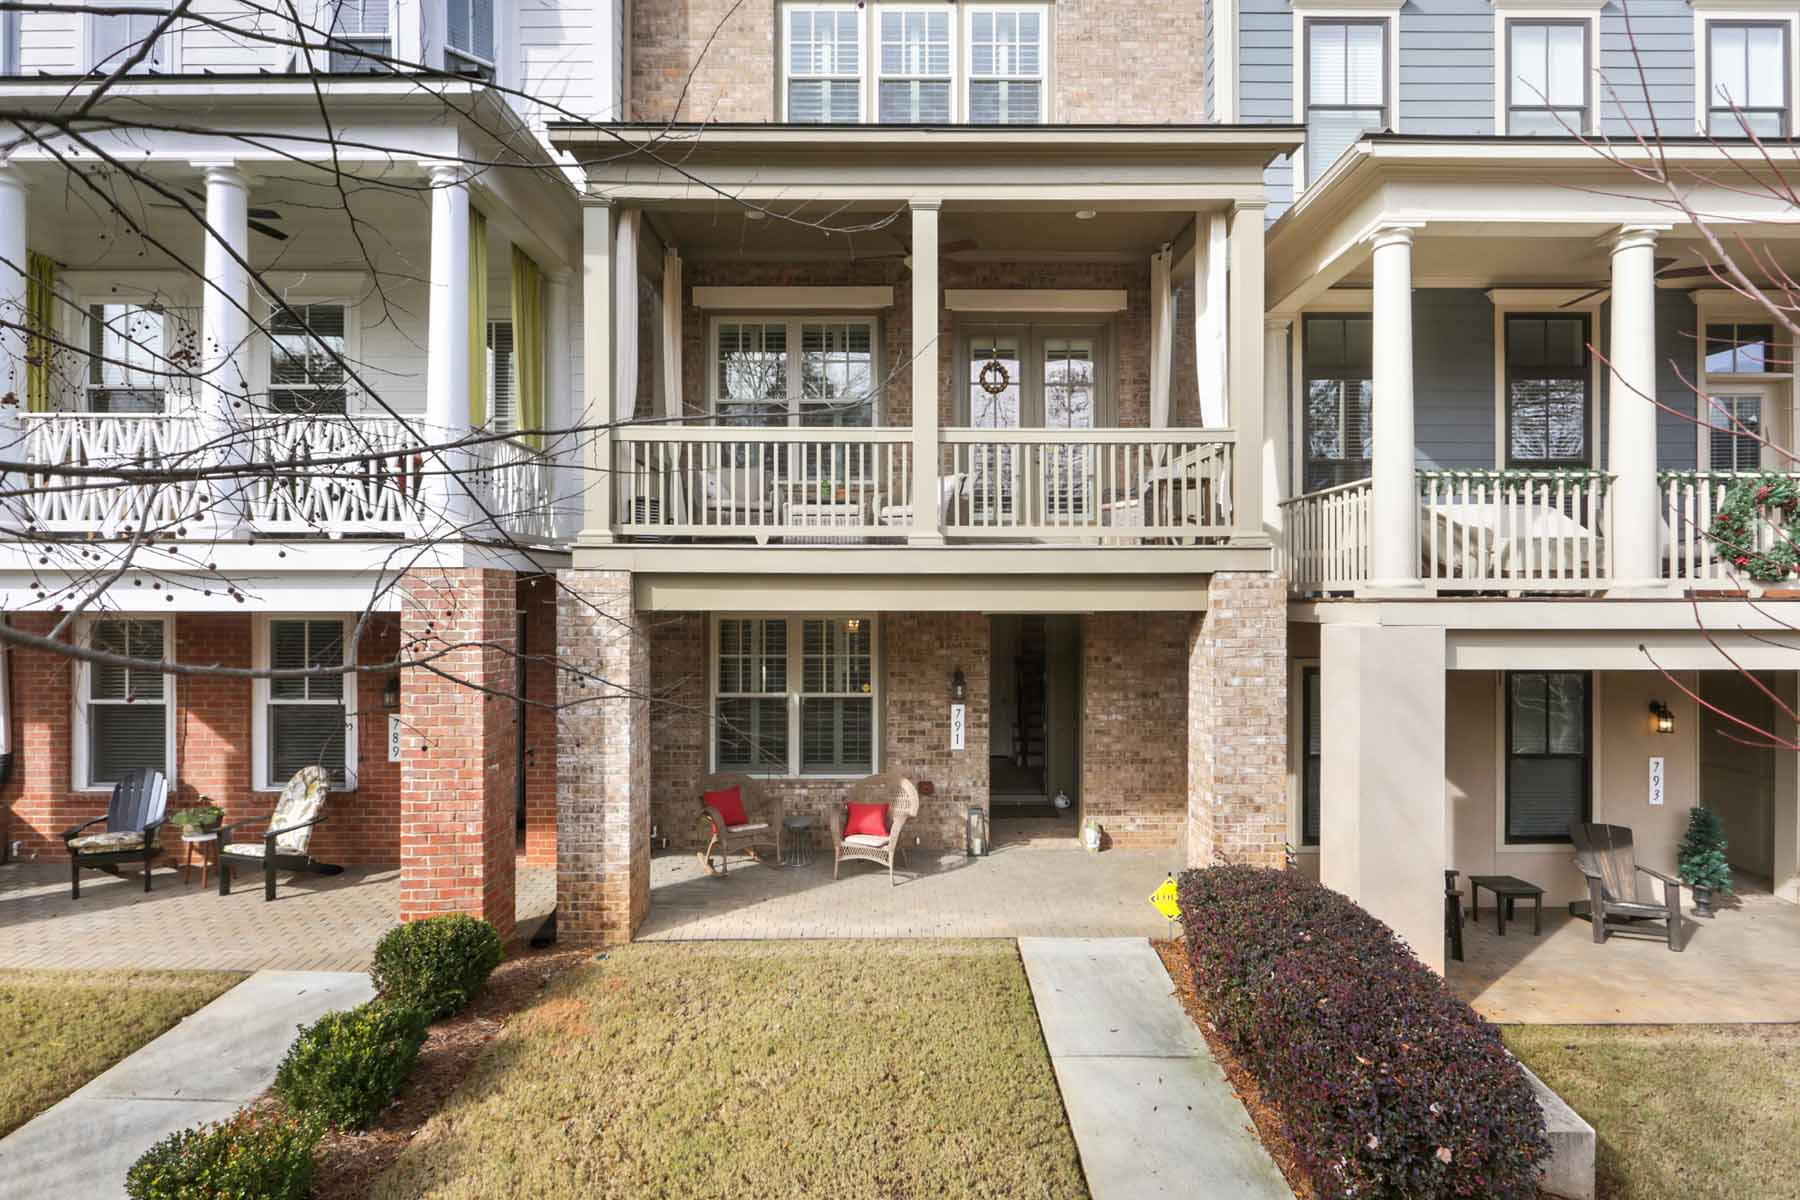 Townhouse for Sale at Stunning Inman Park Townhome Overlooking The Beltline 791 Corduroy Lane Atlanta, Georgia 30312 United States